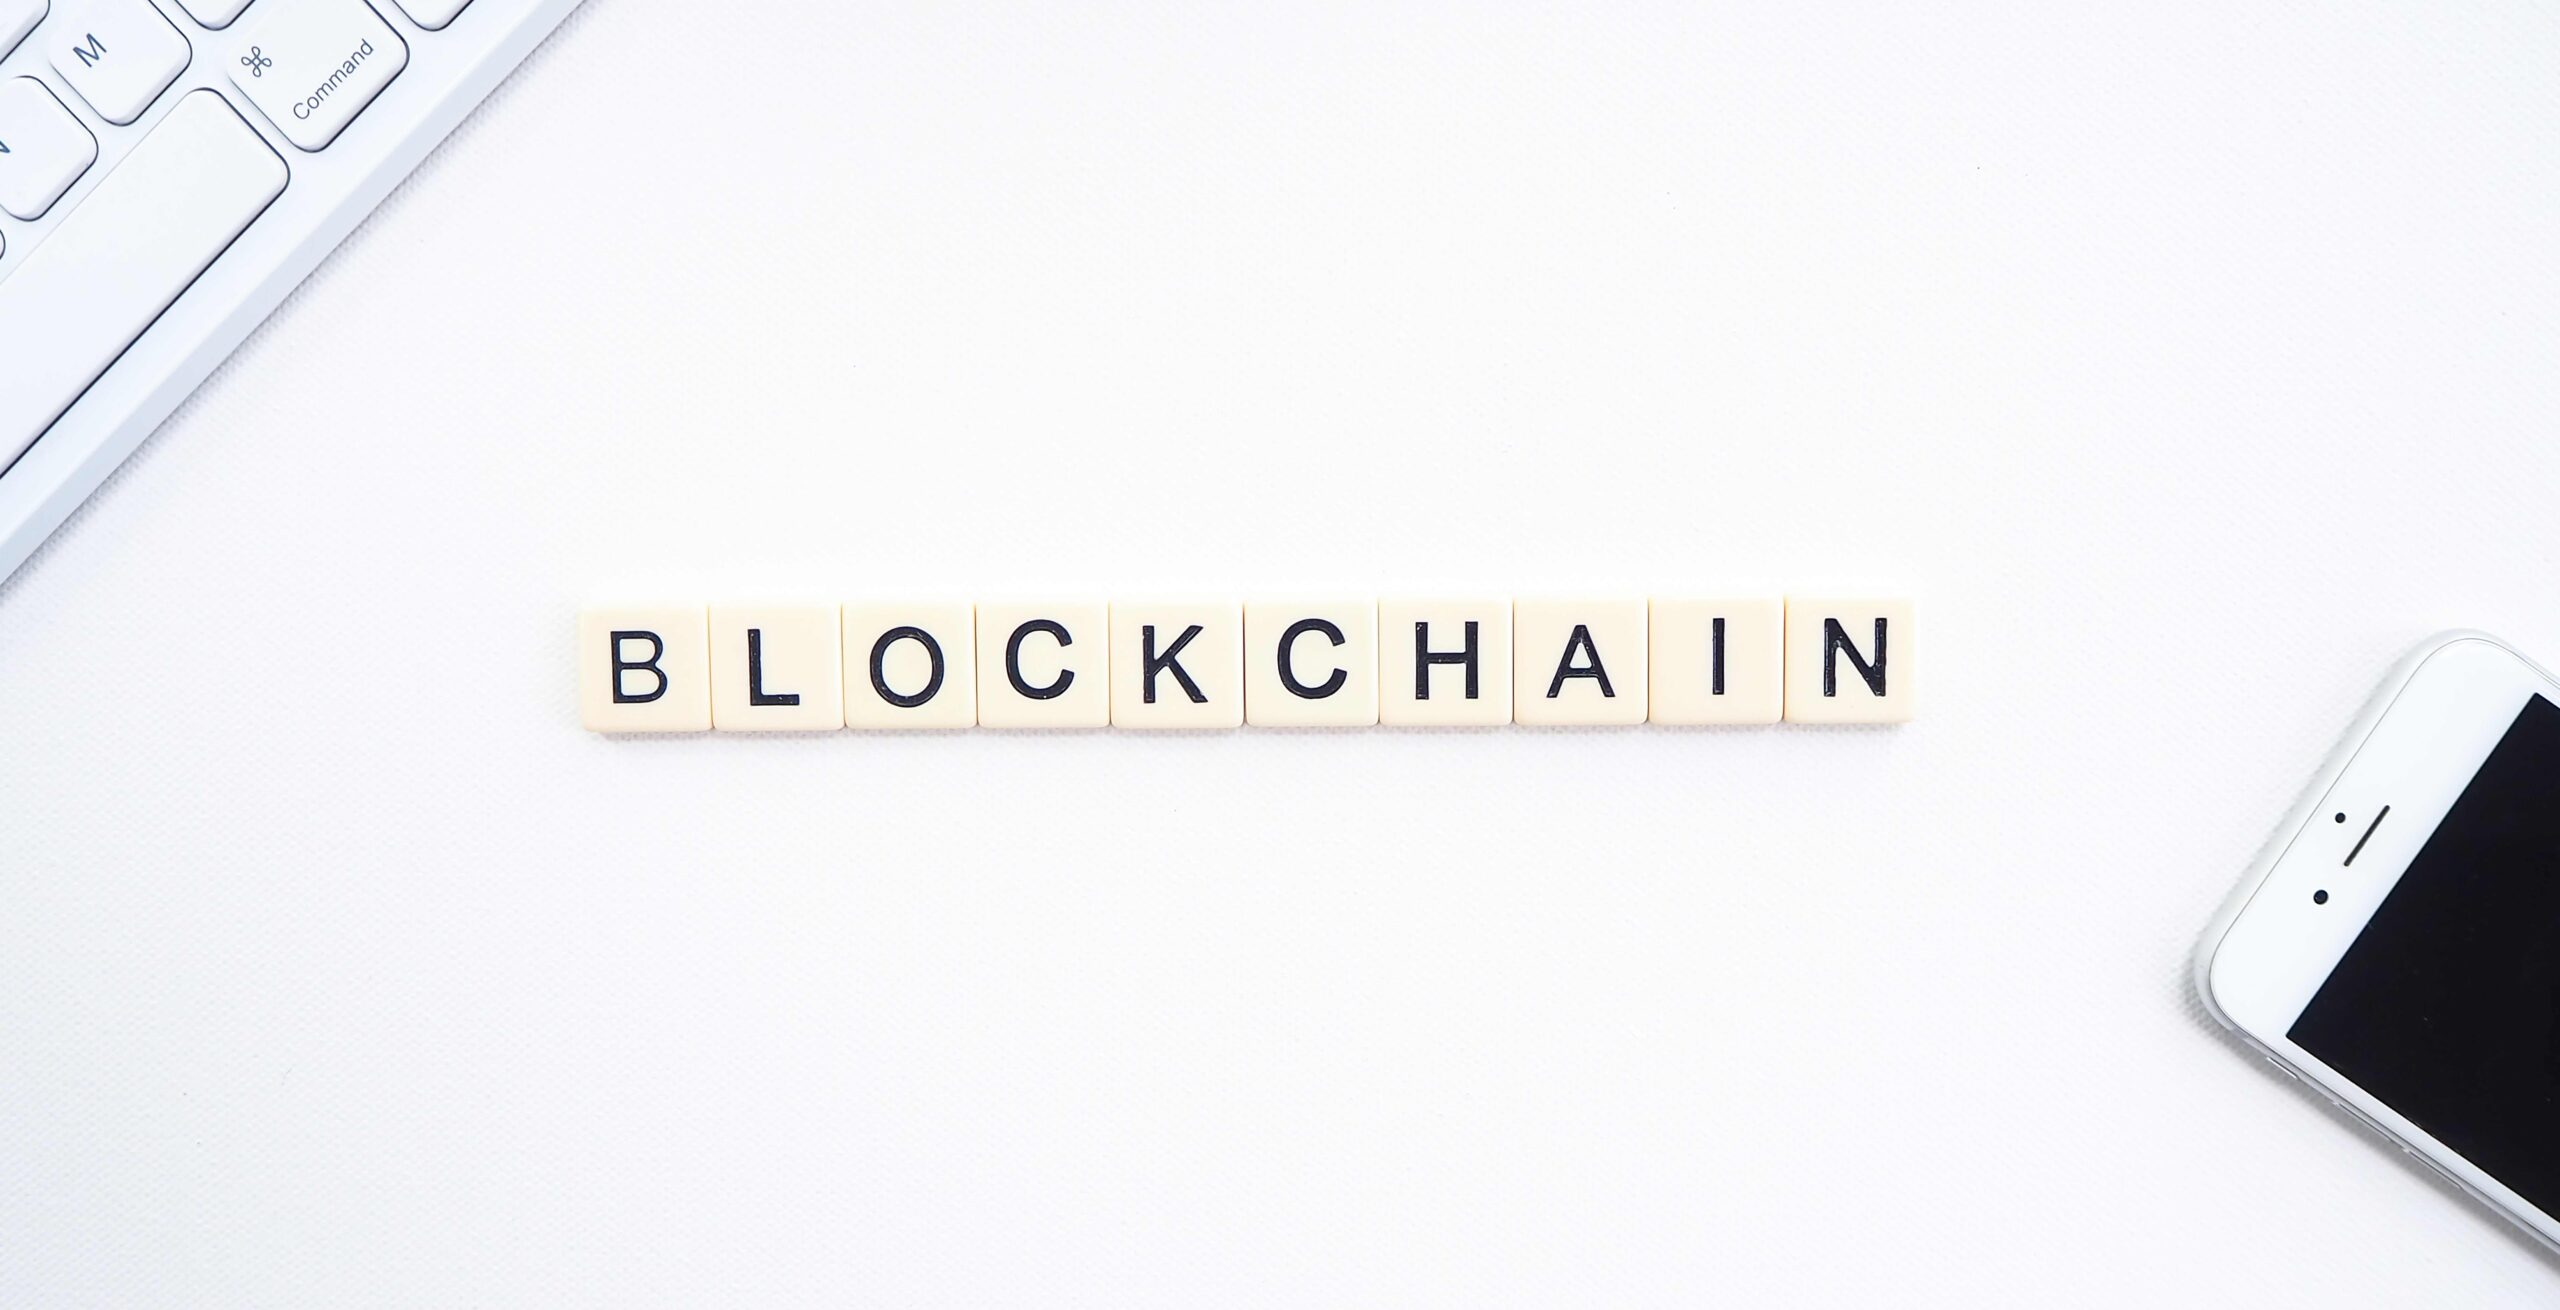 Why is Blockchain Technology So Vital to the World?